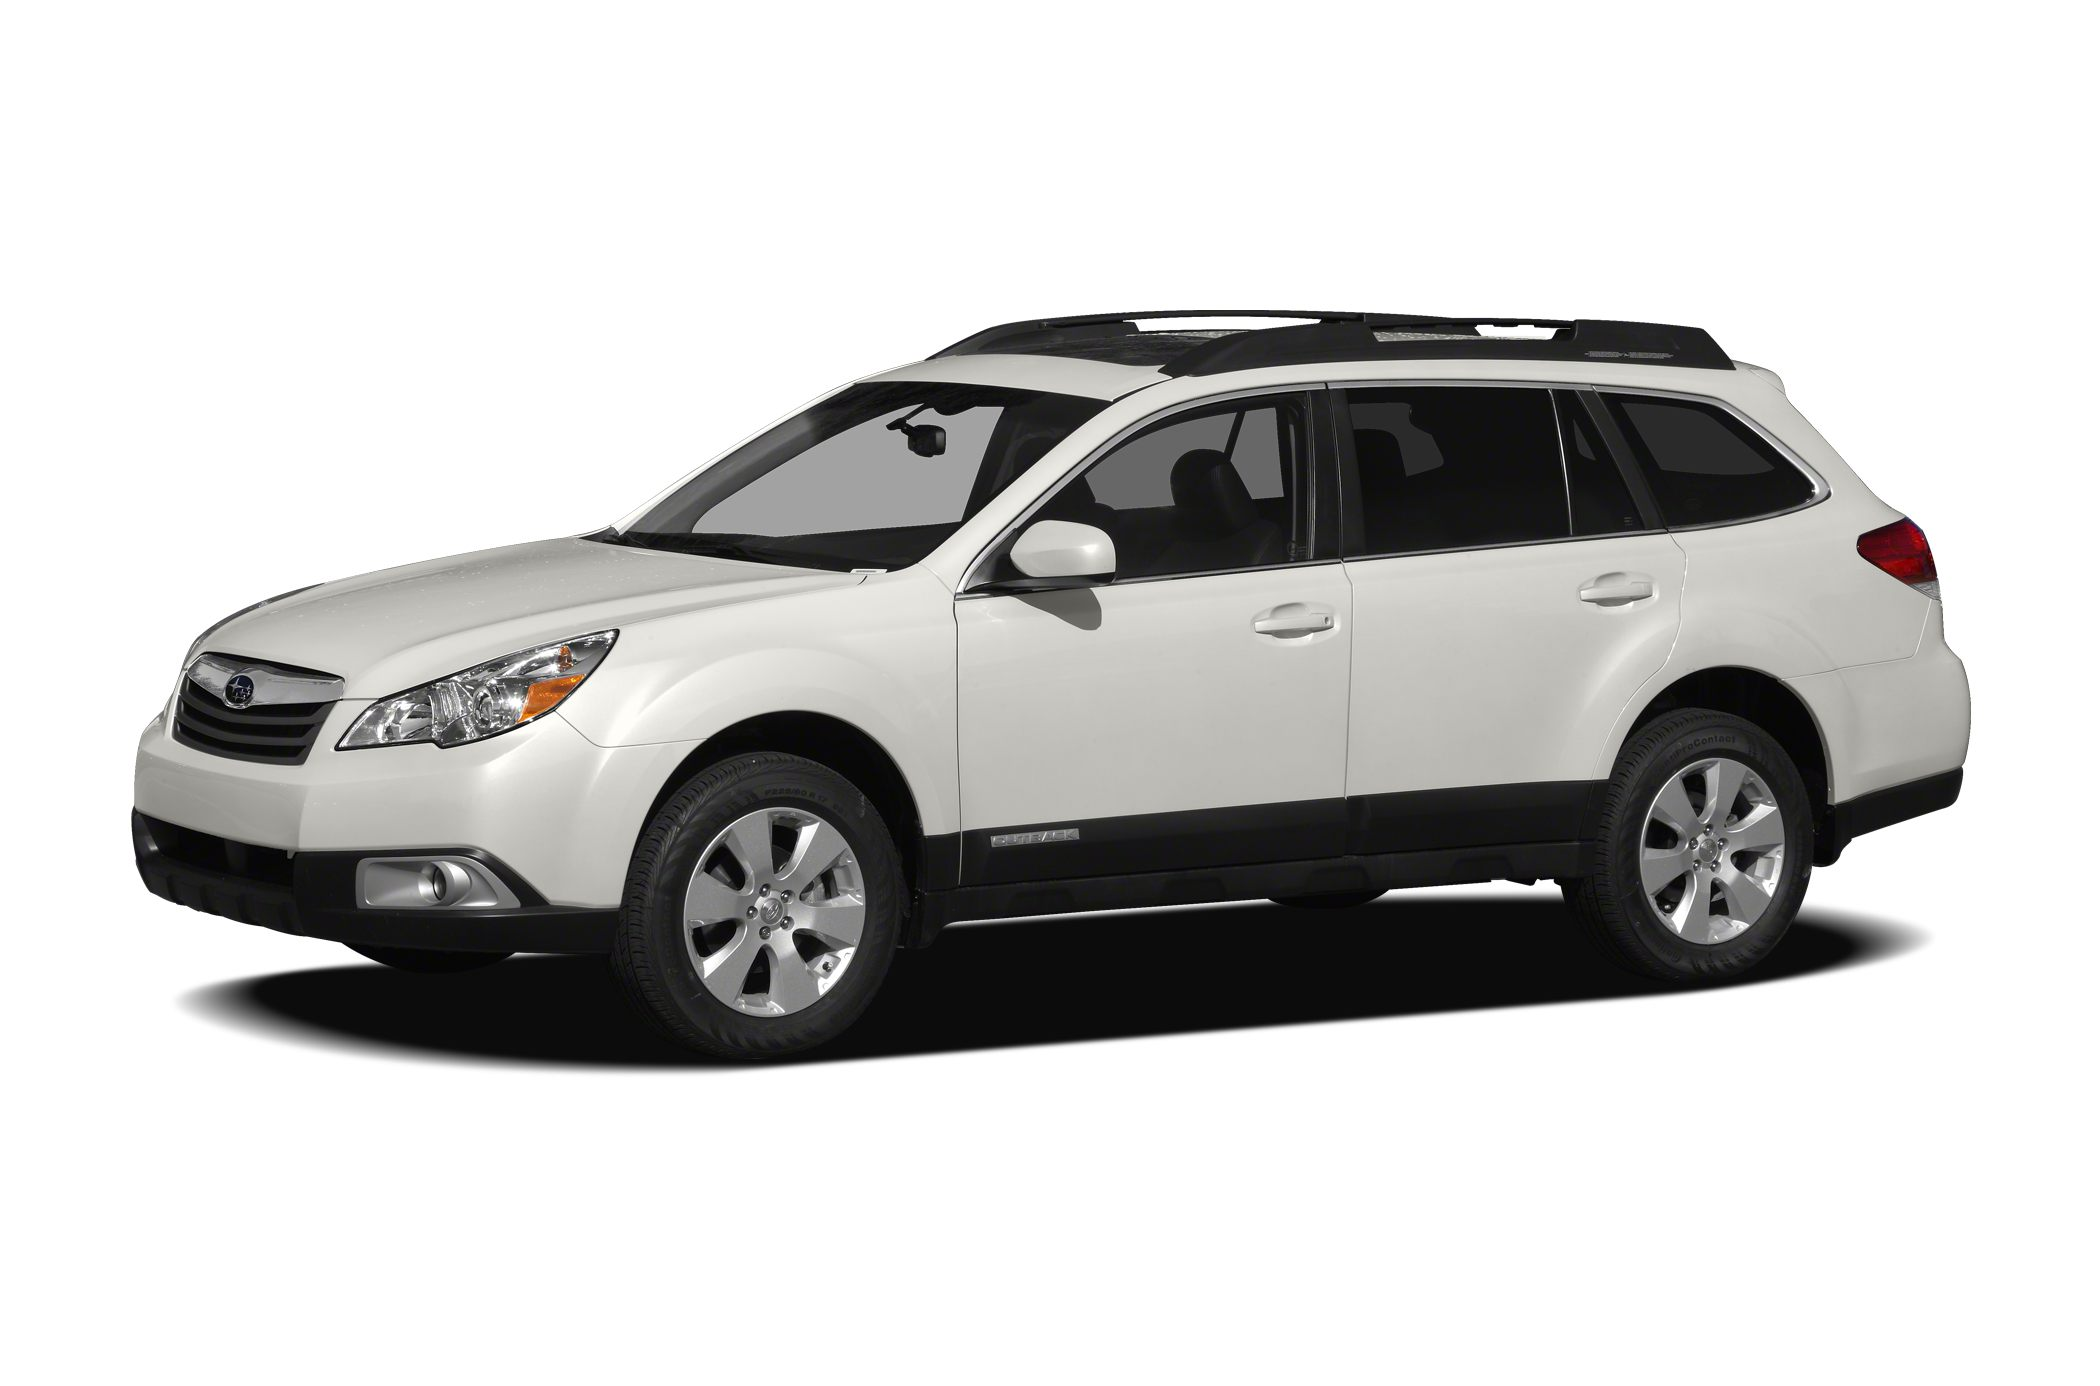 2012 Subaru Outback 2.5i Premium Wagon for sale in Weaverville for $16,999 with 80,297 miles.